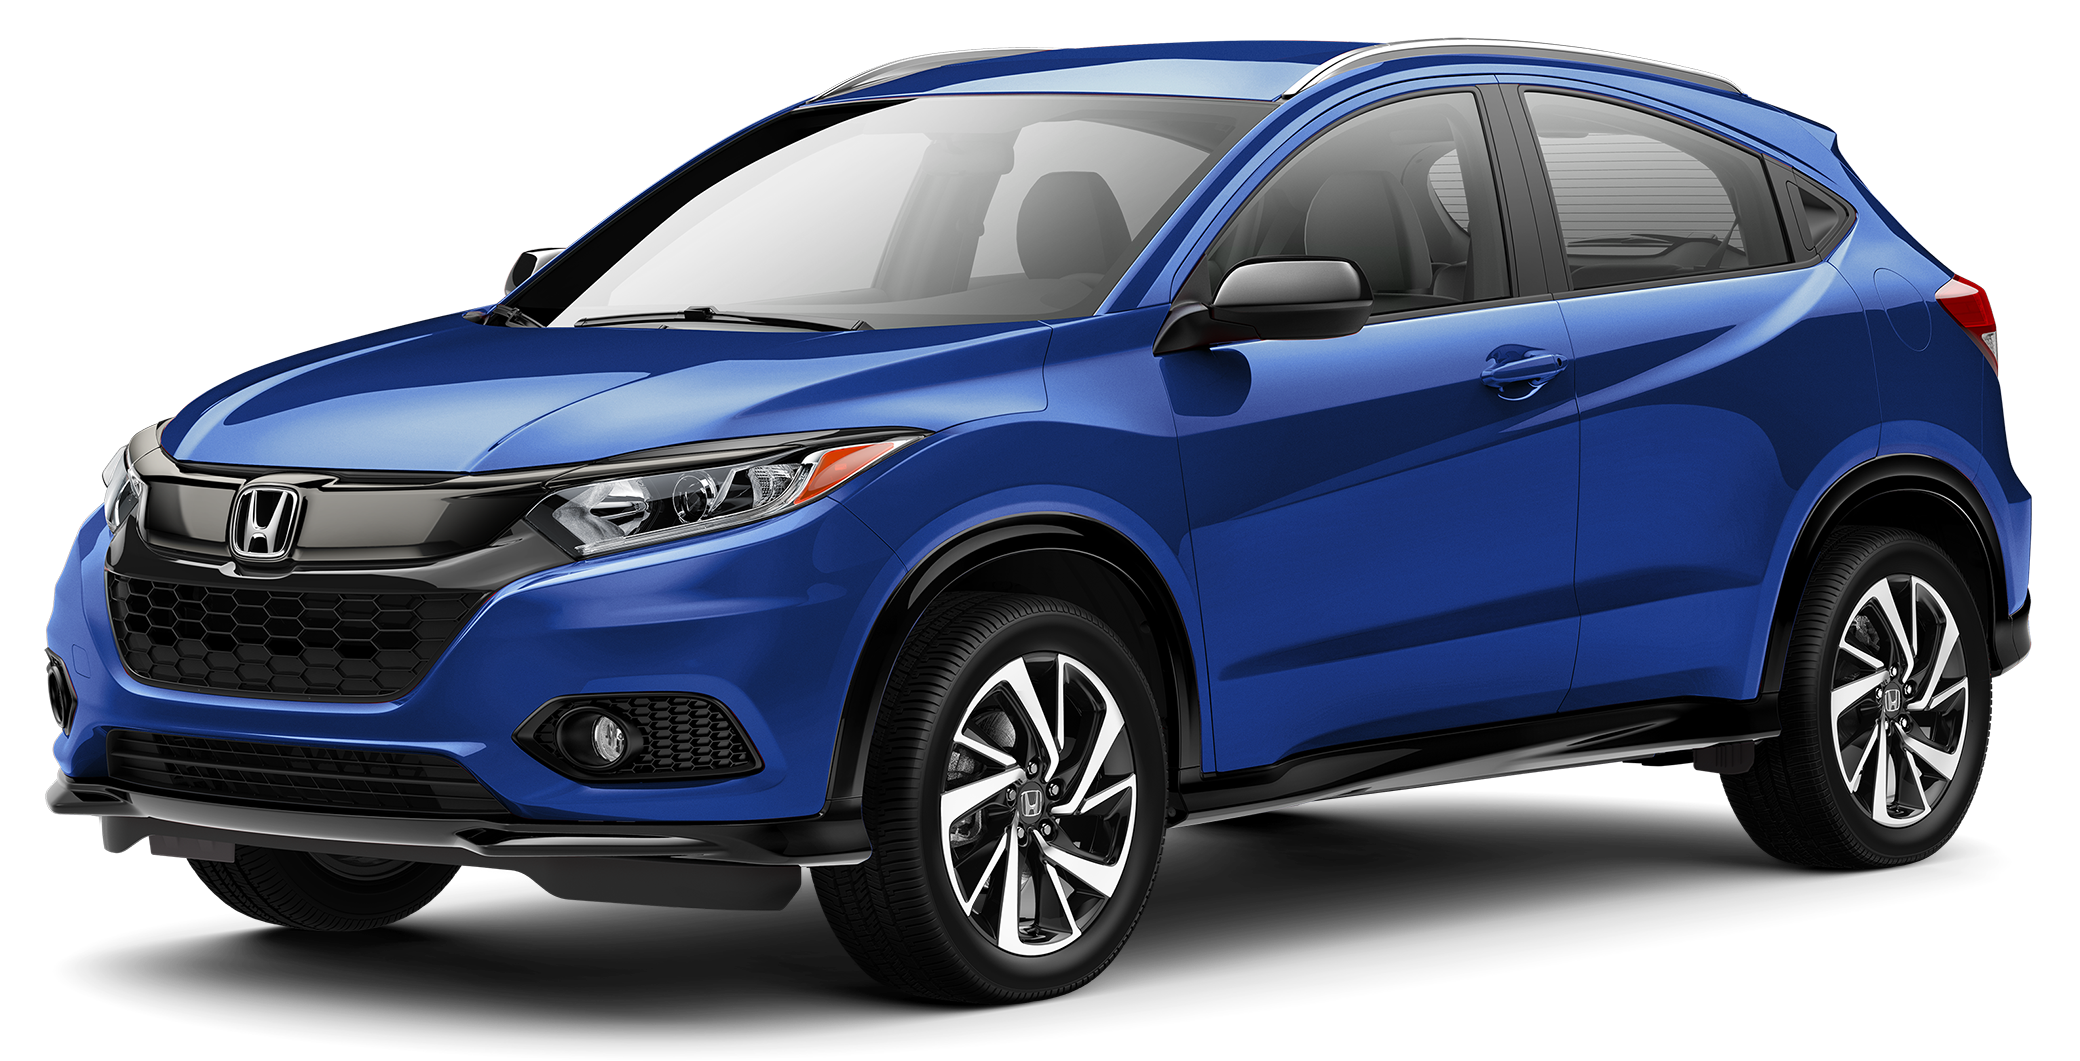 http://images.dealer.com/ddc/vehicles/2020/Honda/HR-V/SUV/trim_Sport_1438d9/perspective/front-left/2020_76.png